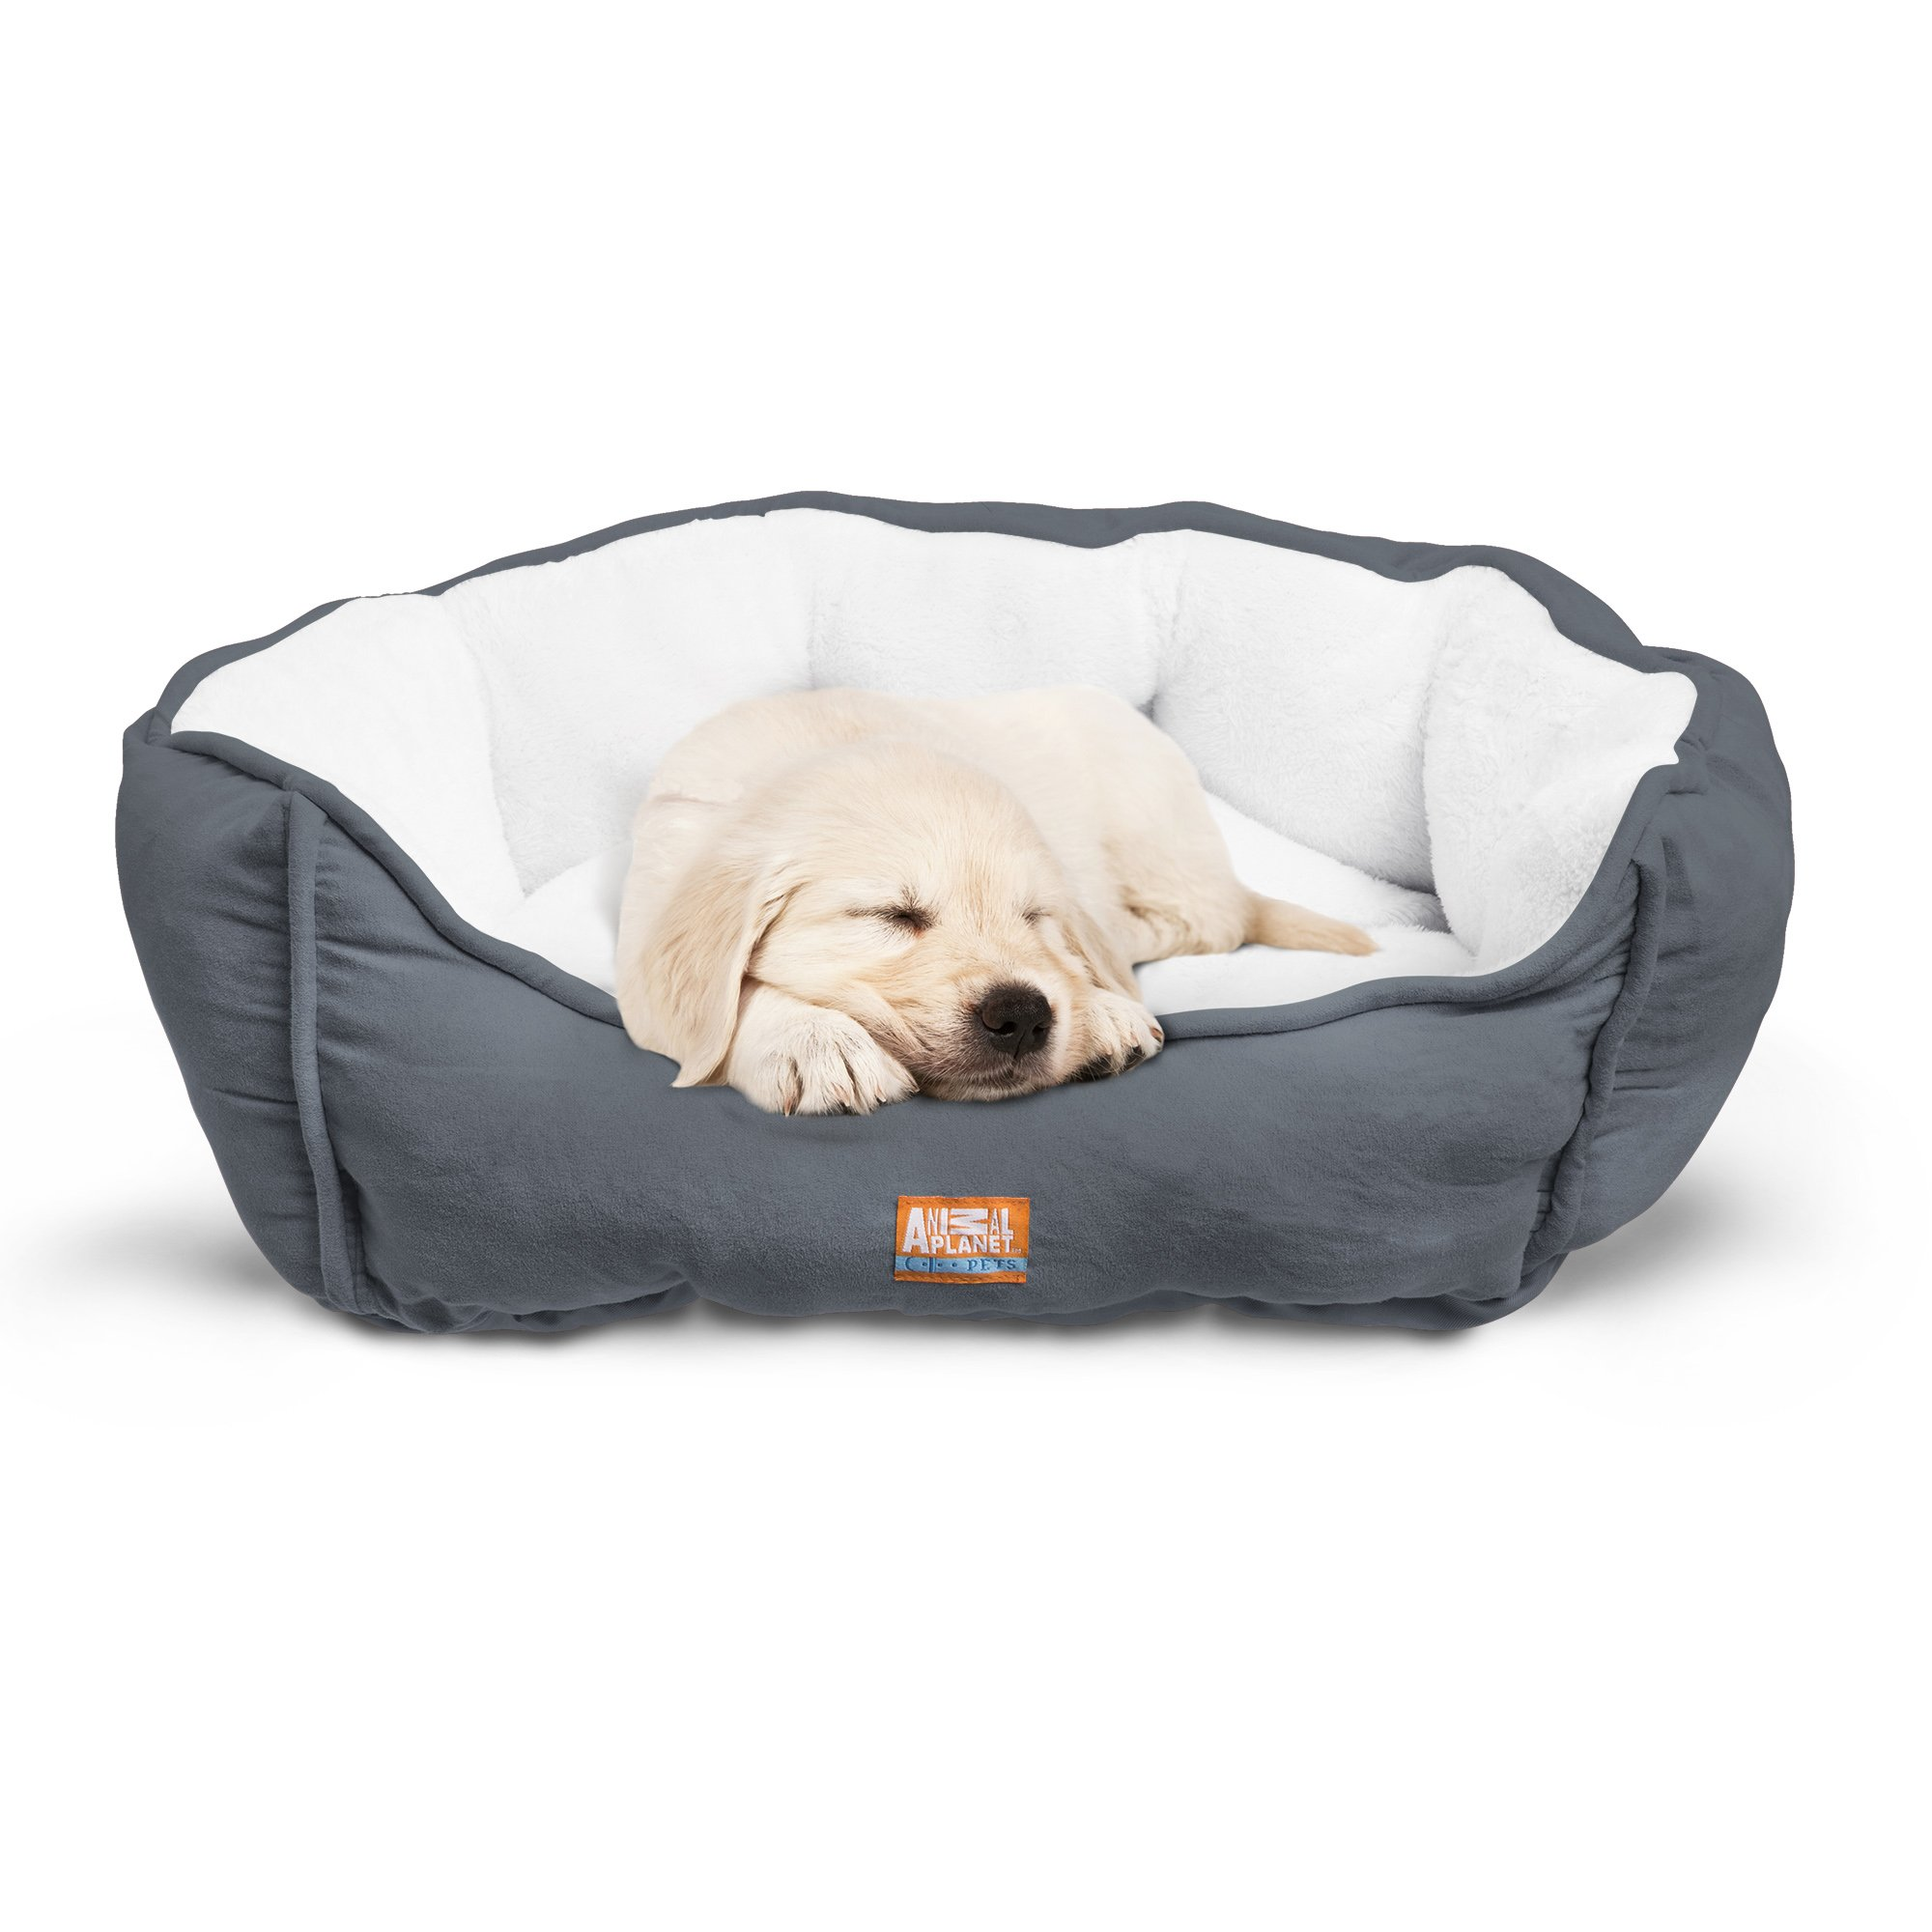 """Animal Planet Round Plush Micro Suede & Sherpa Bolster Pet Bed for Dogs & Cats, Puppies, and Small & Toy Breeds; Cuddly and Warm for Burrowing and Snuggling, Easy-to-Clean 24""""x 17""""x 9"""" Gray"""